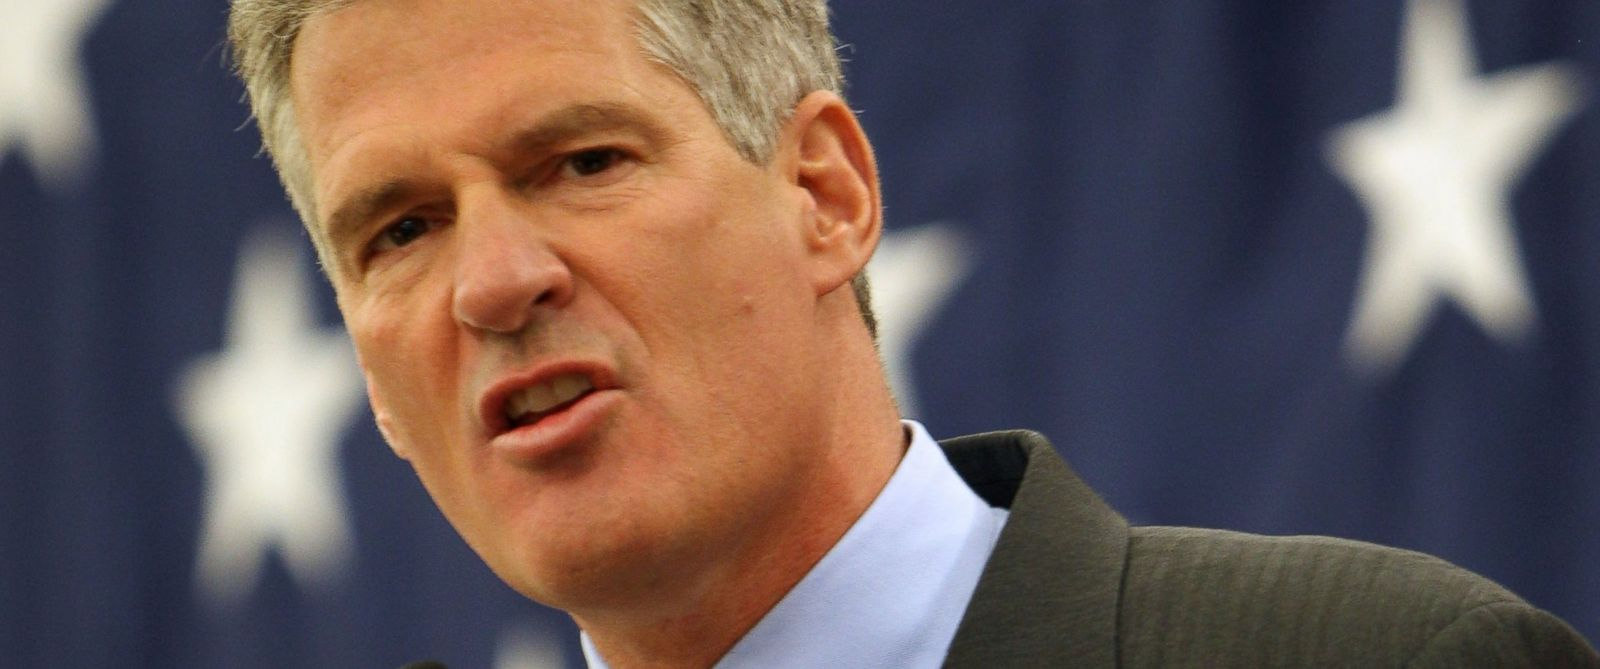 scott brown s 2014 concession speech sounded a lot like